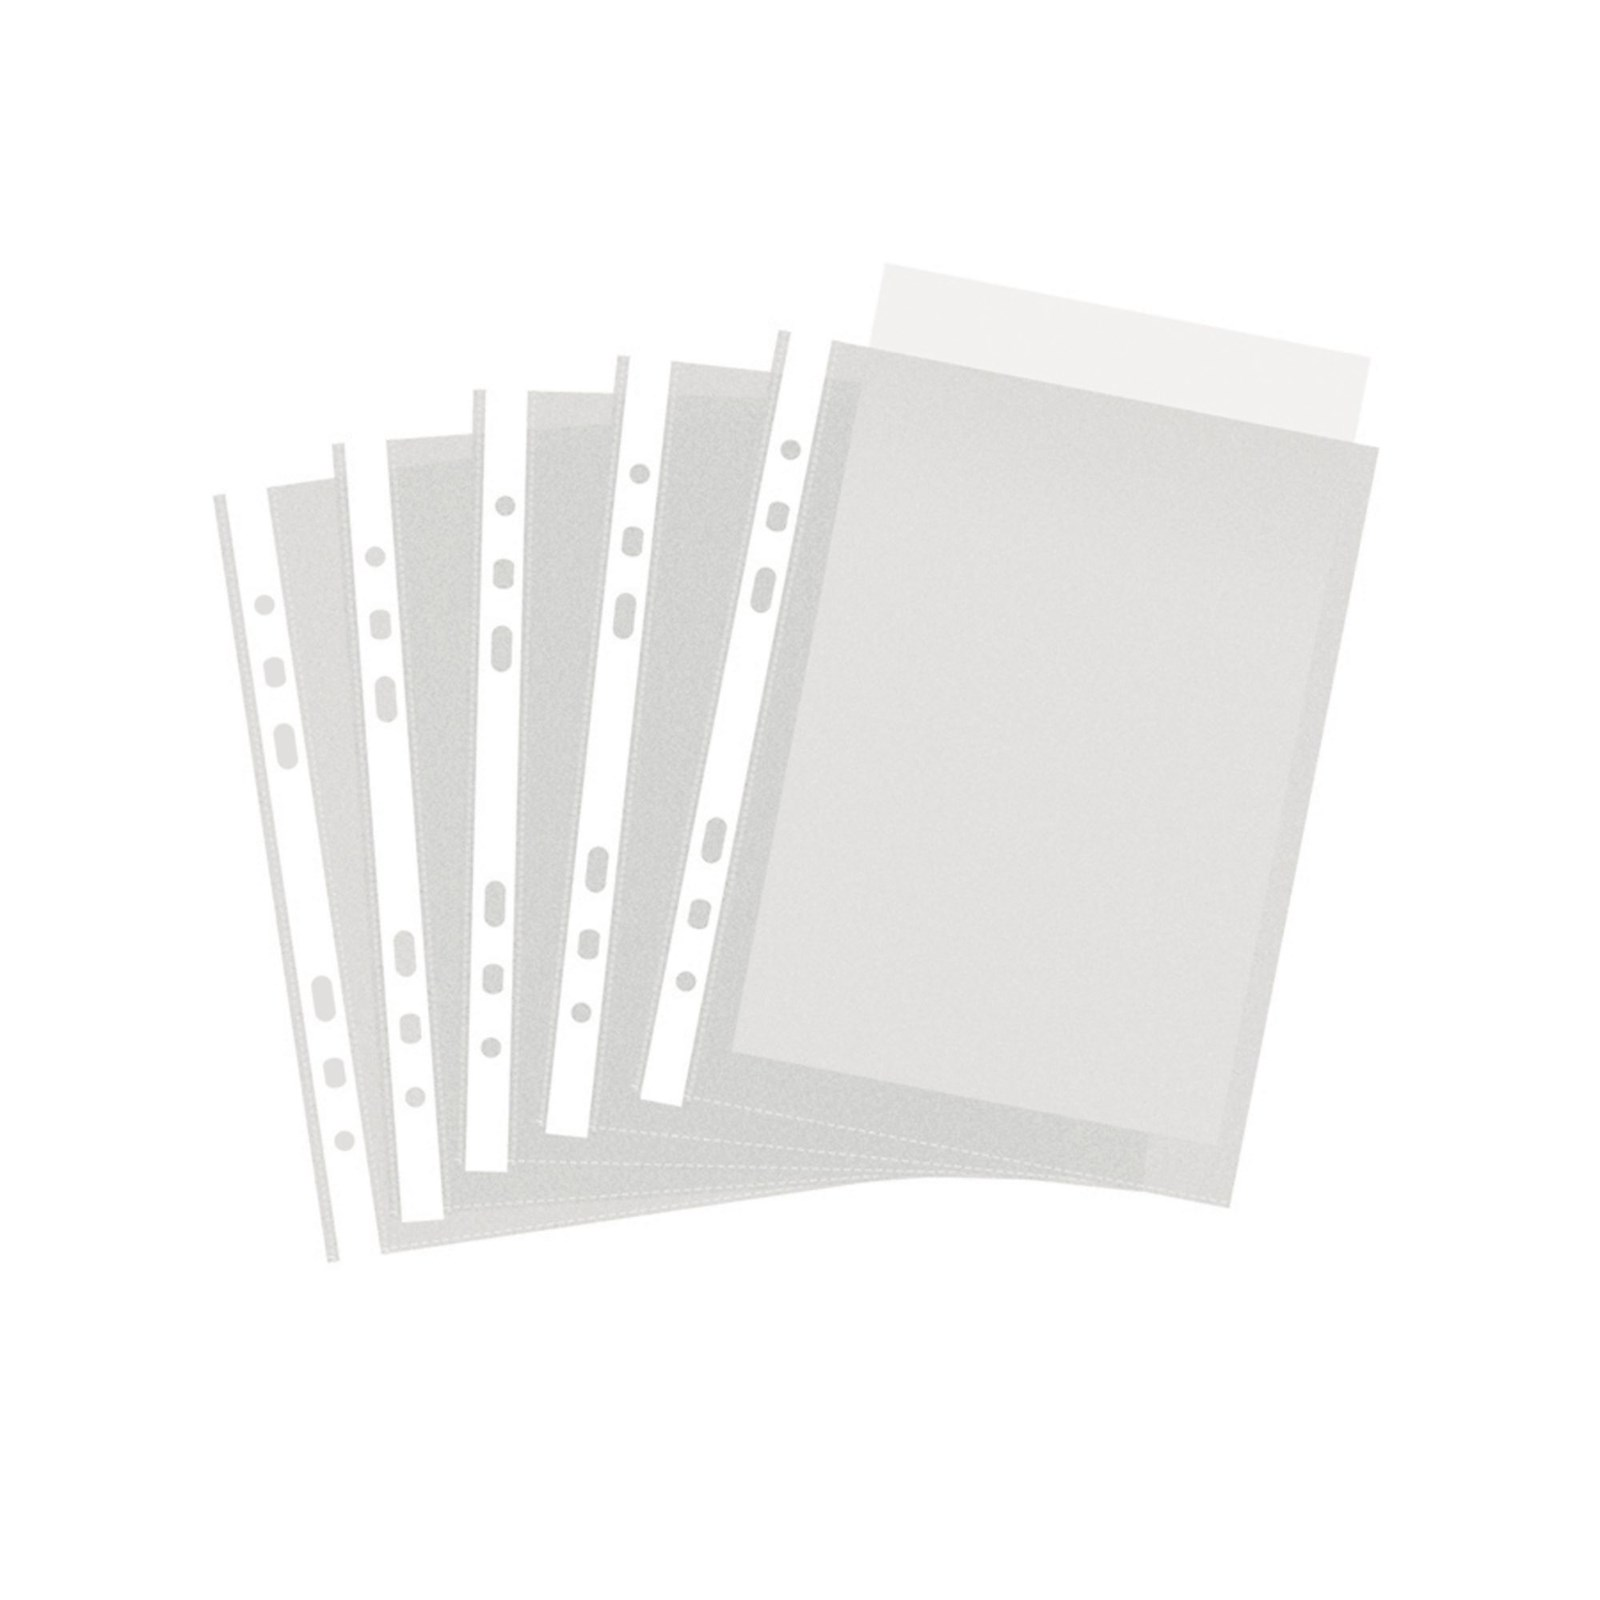 Classmates Punched Pocket A5 Clear - Pack of 100